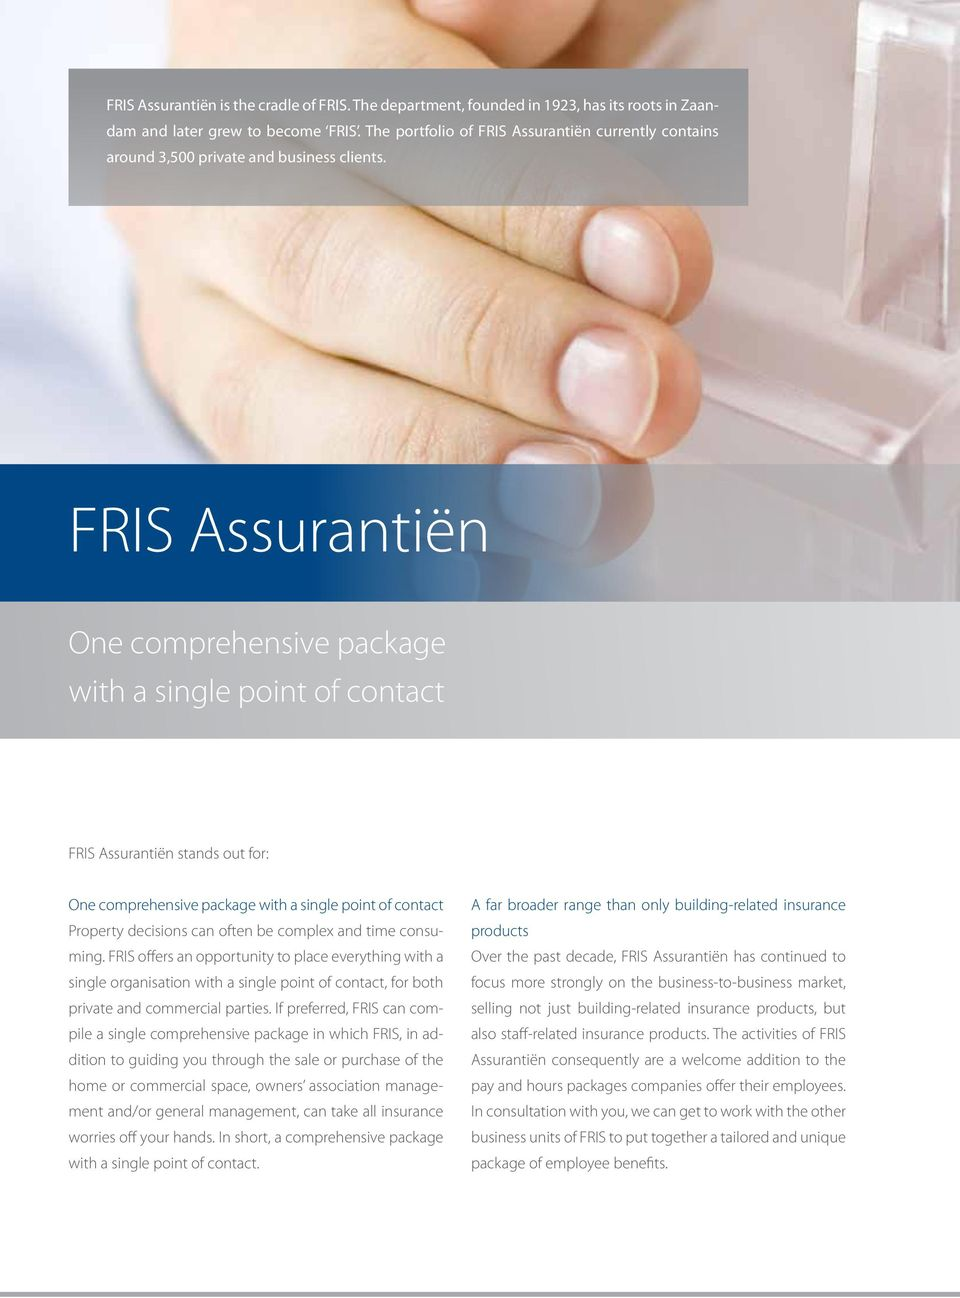 FRIS Assurantiën One comprehensive package with a single point of contact FRIS Assurantiën stands out for: One comprehensive package with a single point of contact Property decisions can often be